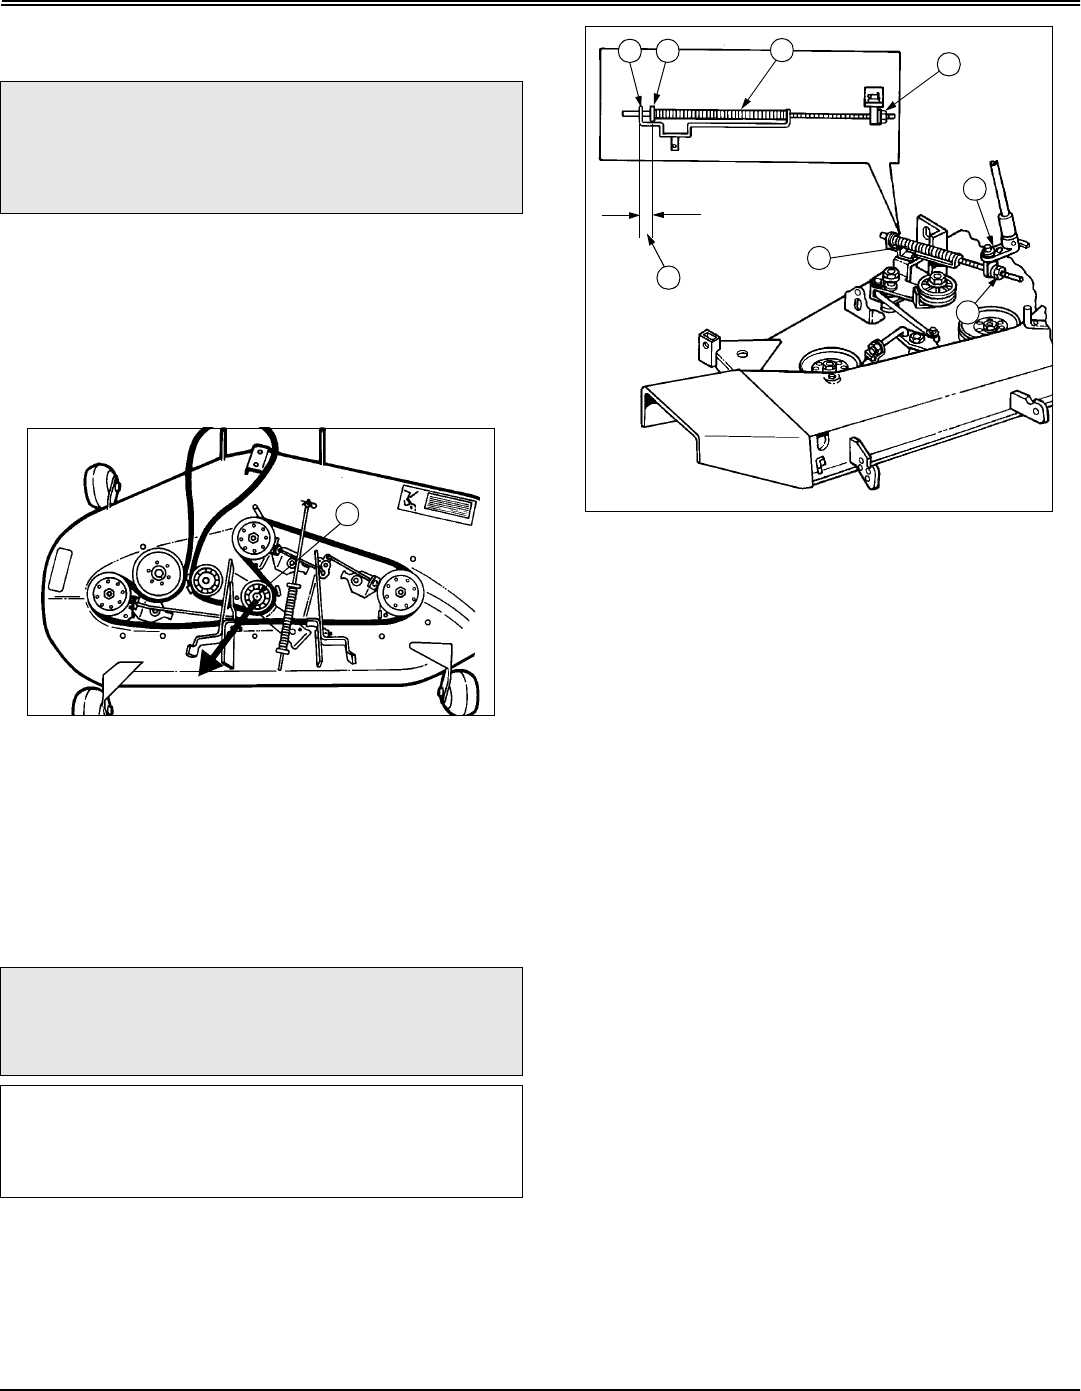 Attractive Scott S Lawn Mower Wiring Diagram Collection Wiring